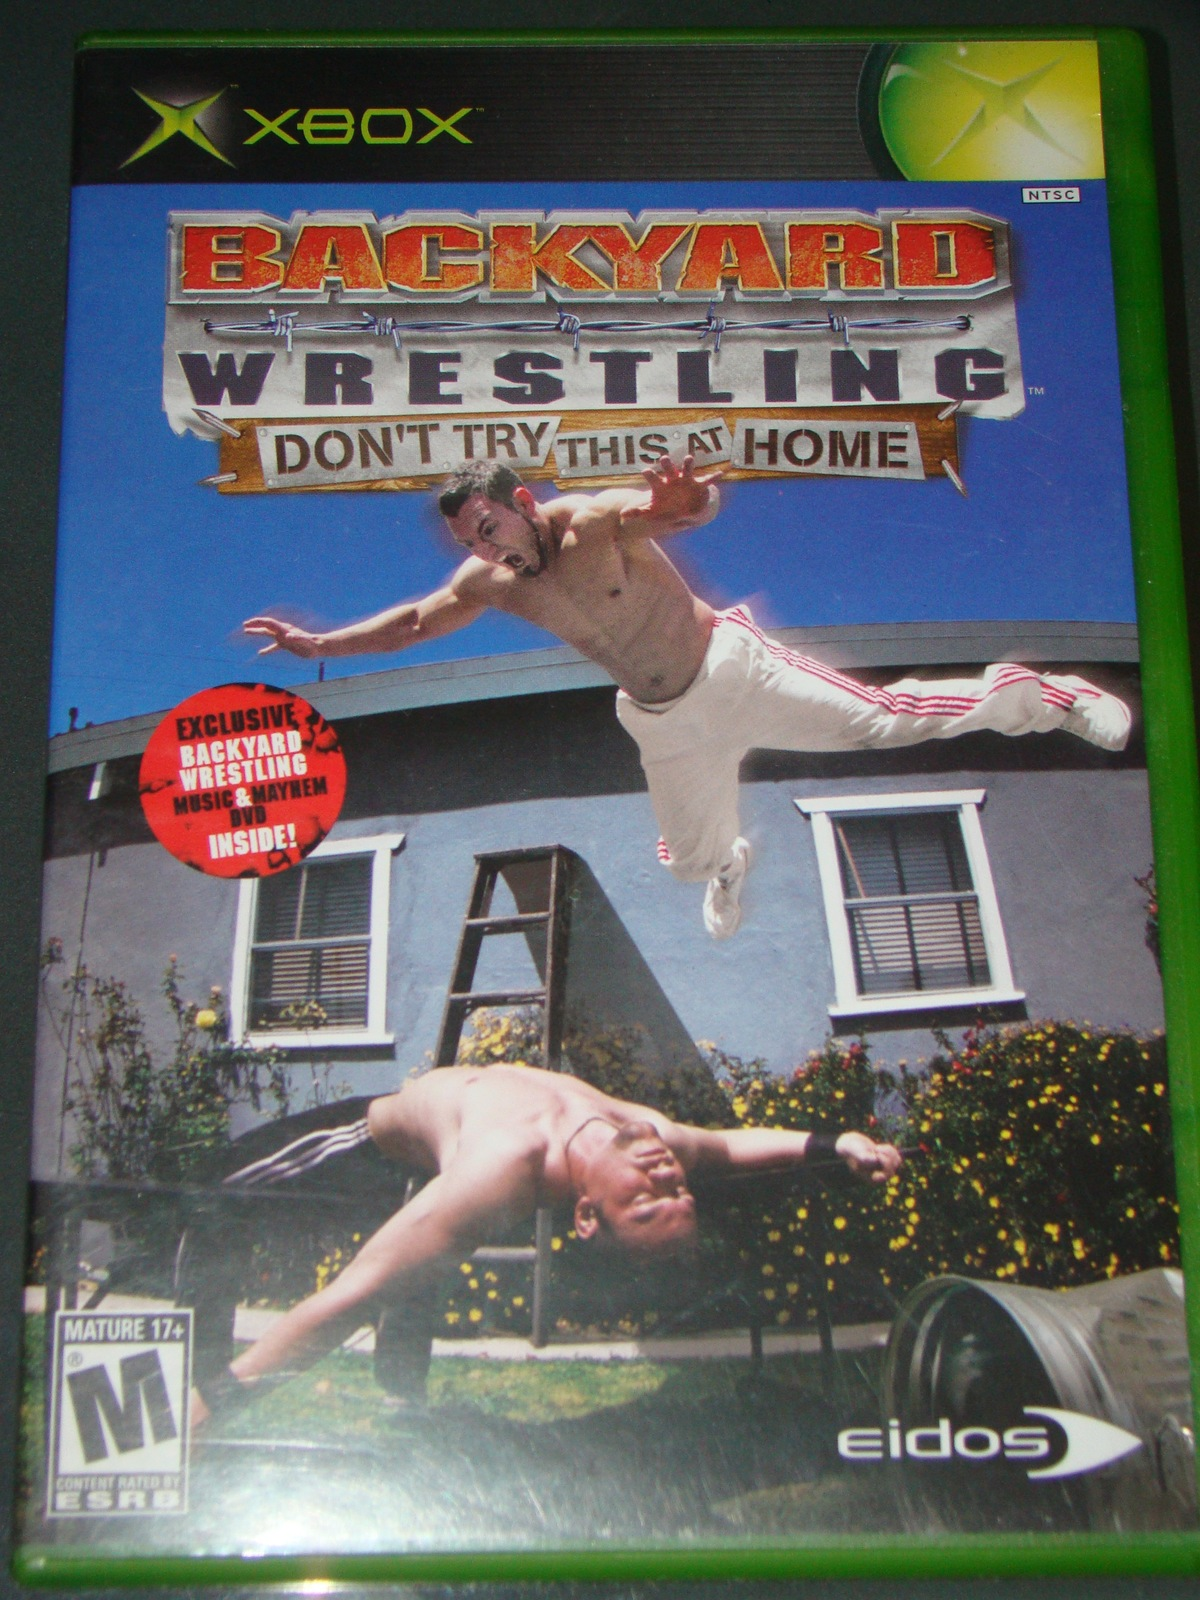 XBOX - BACK YARD WRESTLING - DONT TRY THIS AT HOME (Complete with Instructions) image 3